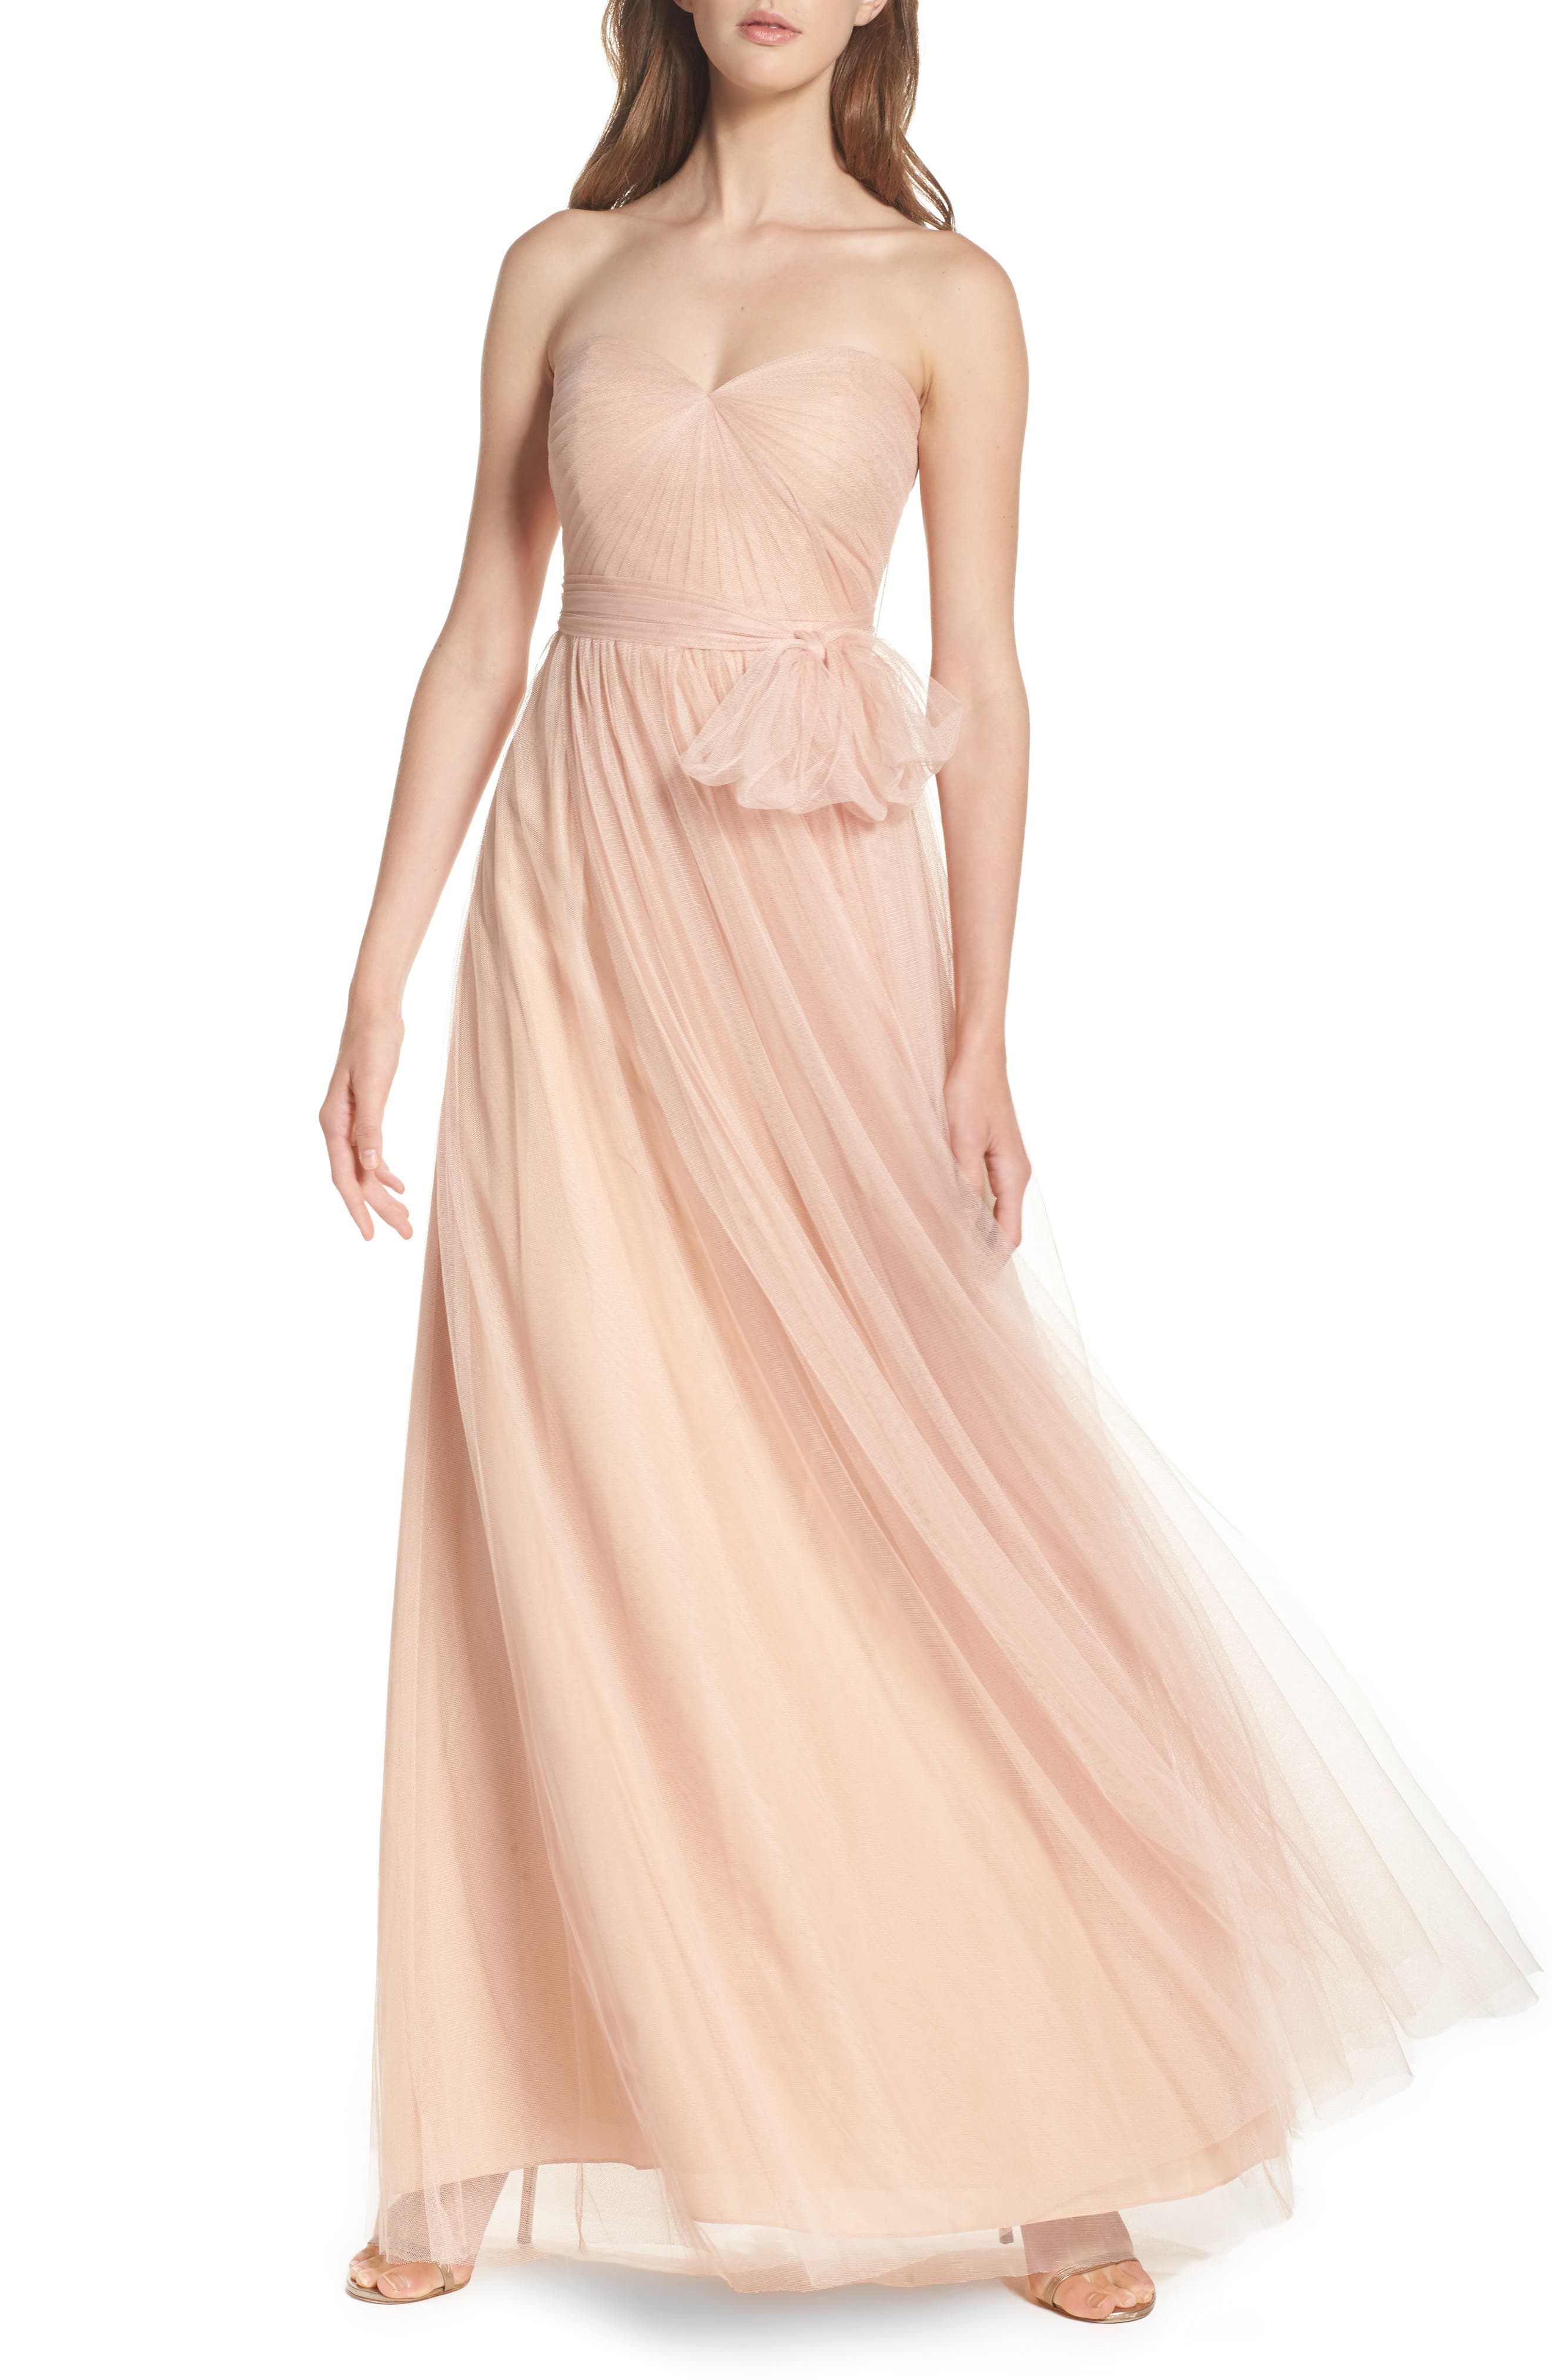 Annabelle Convertible Tulle Column Dress,                             Alternate thumbnail 4, color,                             CAMEO PINK